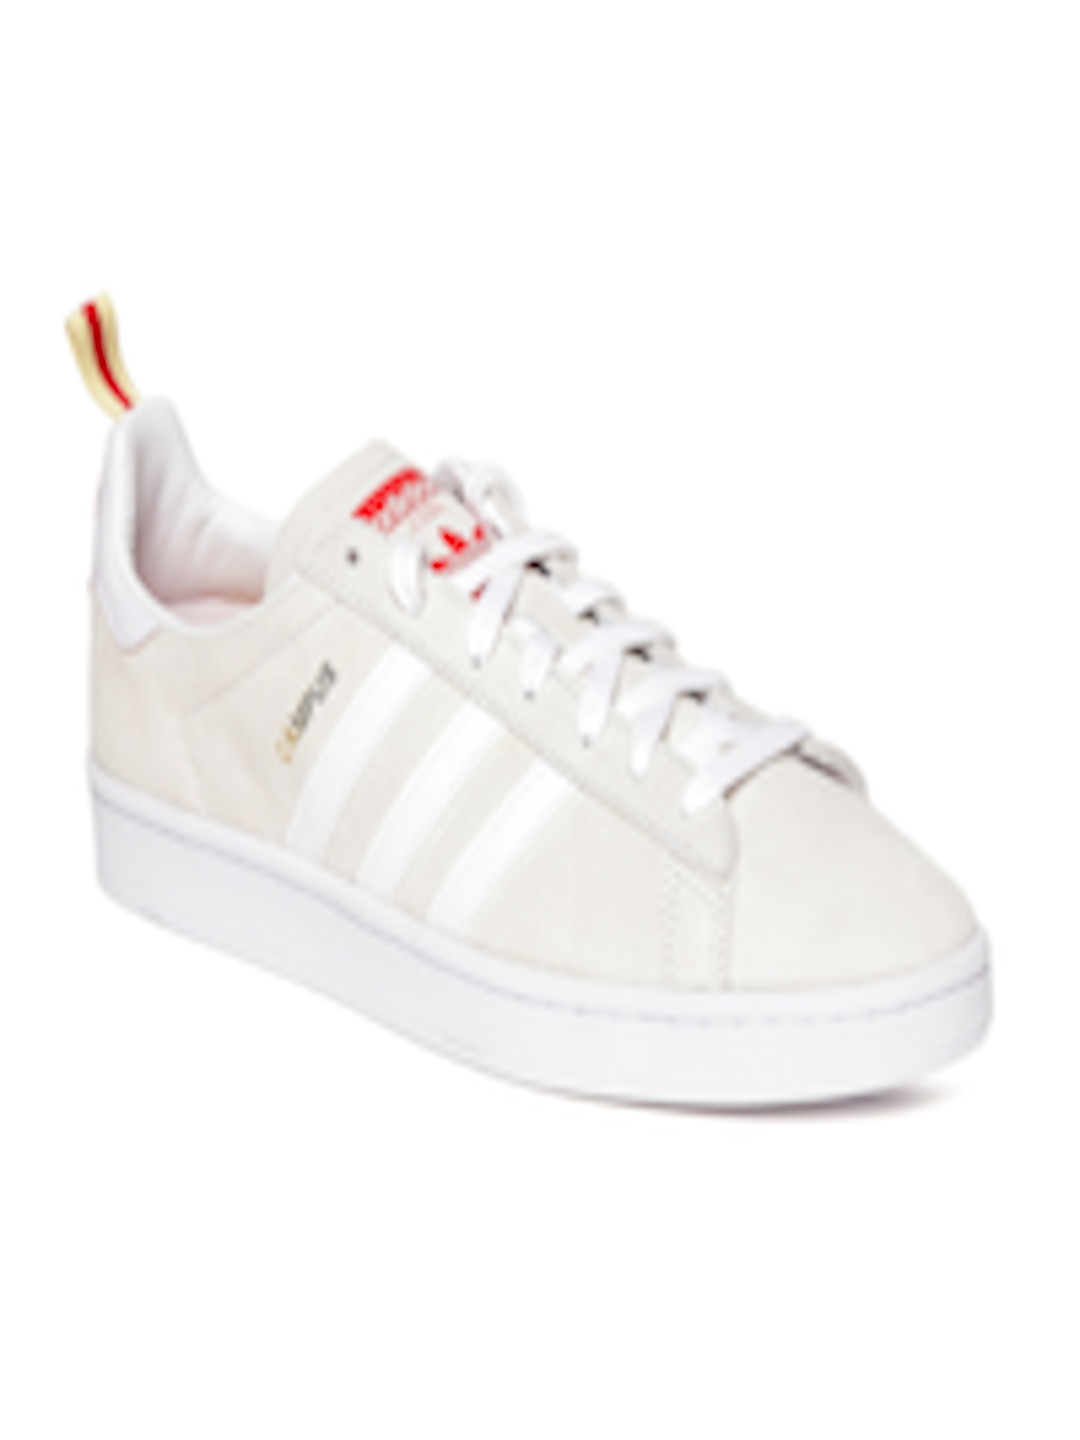 best sneakers c39ec 98c05 Buy ADIDAS Originals Men Off White Campus CNY Leather Sneakers - Casual  Shoes for Men 2393798  Myntra